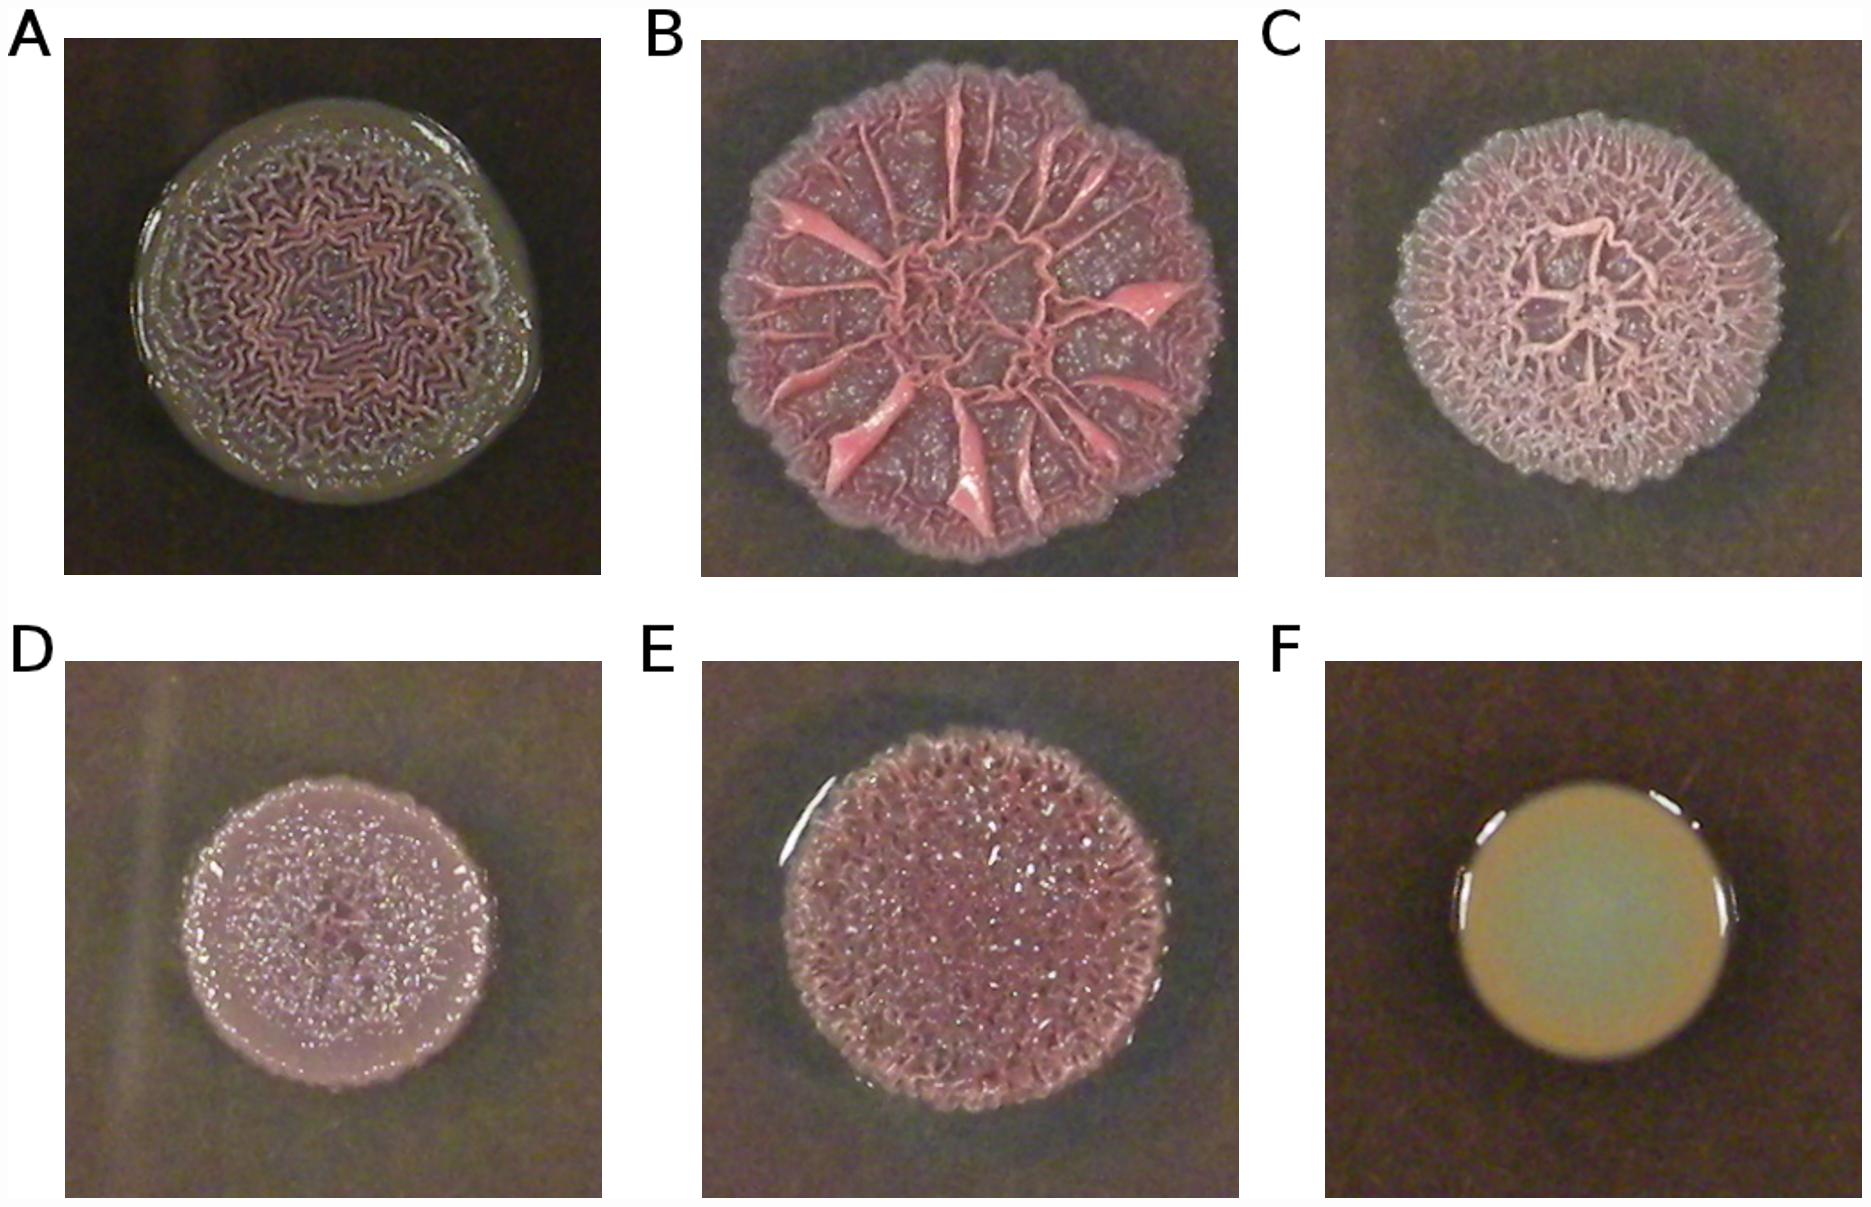 Variation in colony morphology.